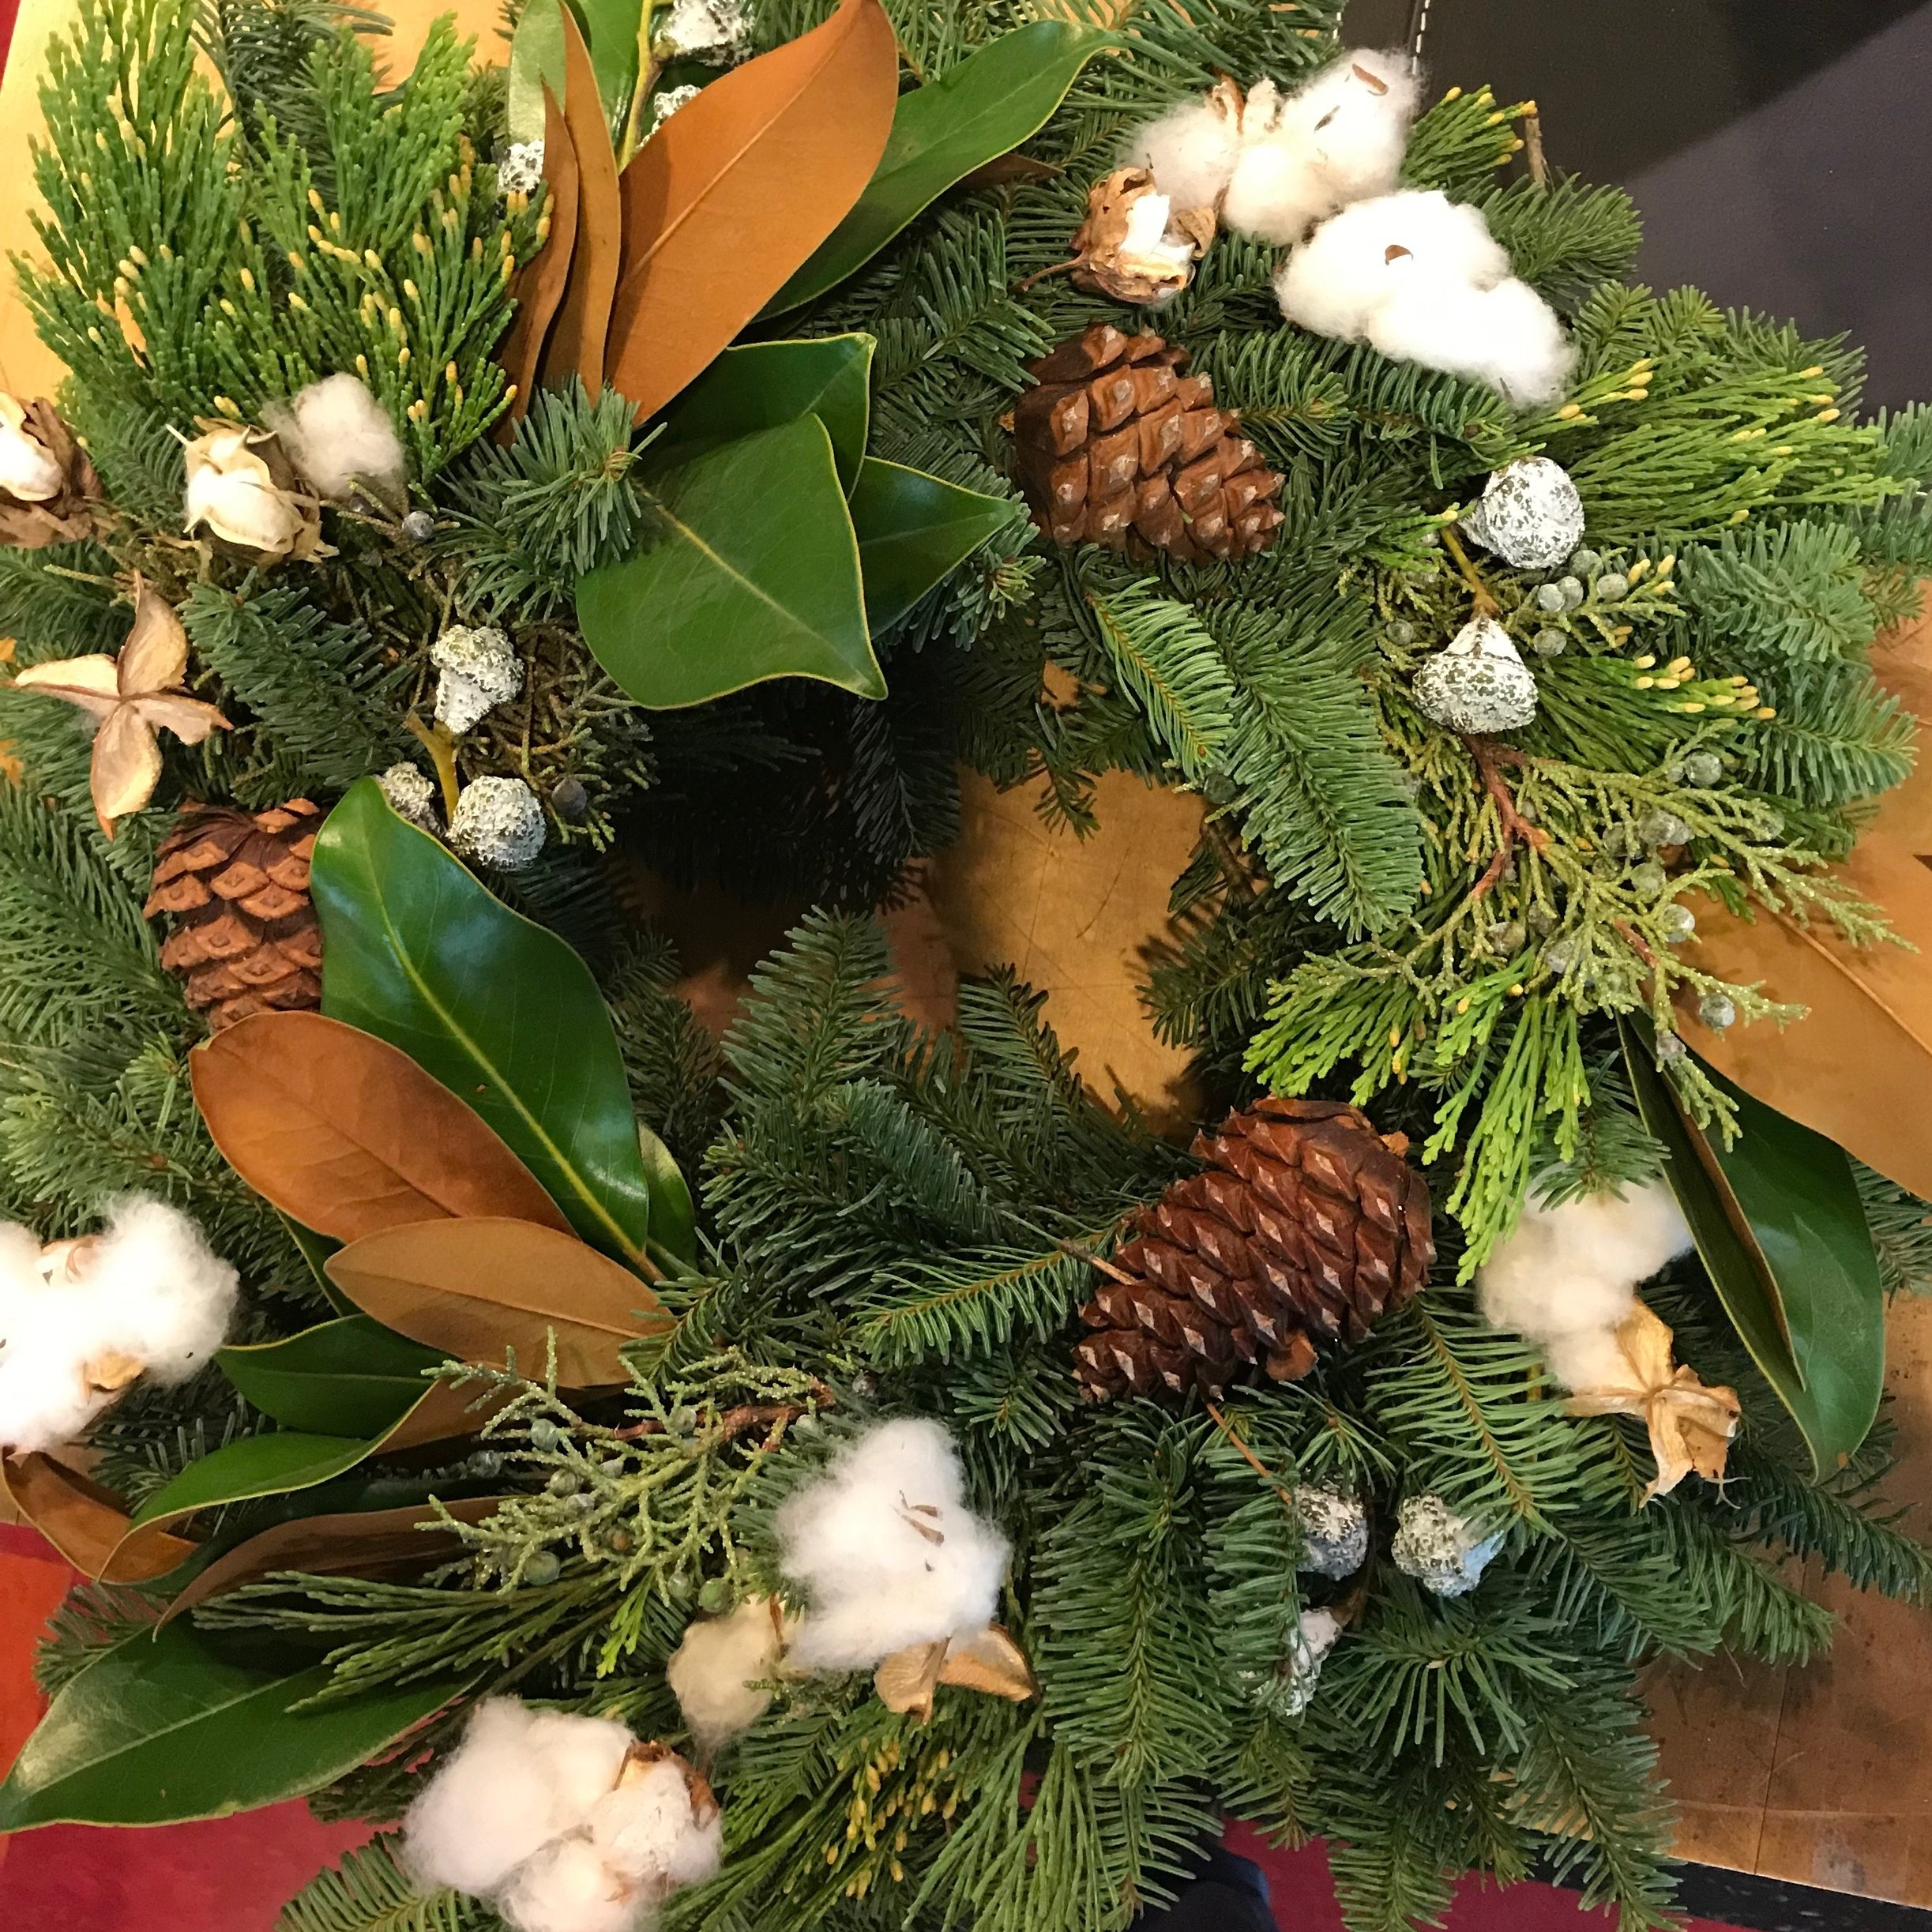 The snowy cotton really pops on this wreath, also made in-house at Welch.